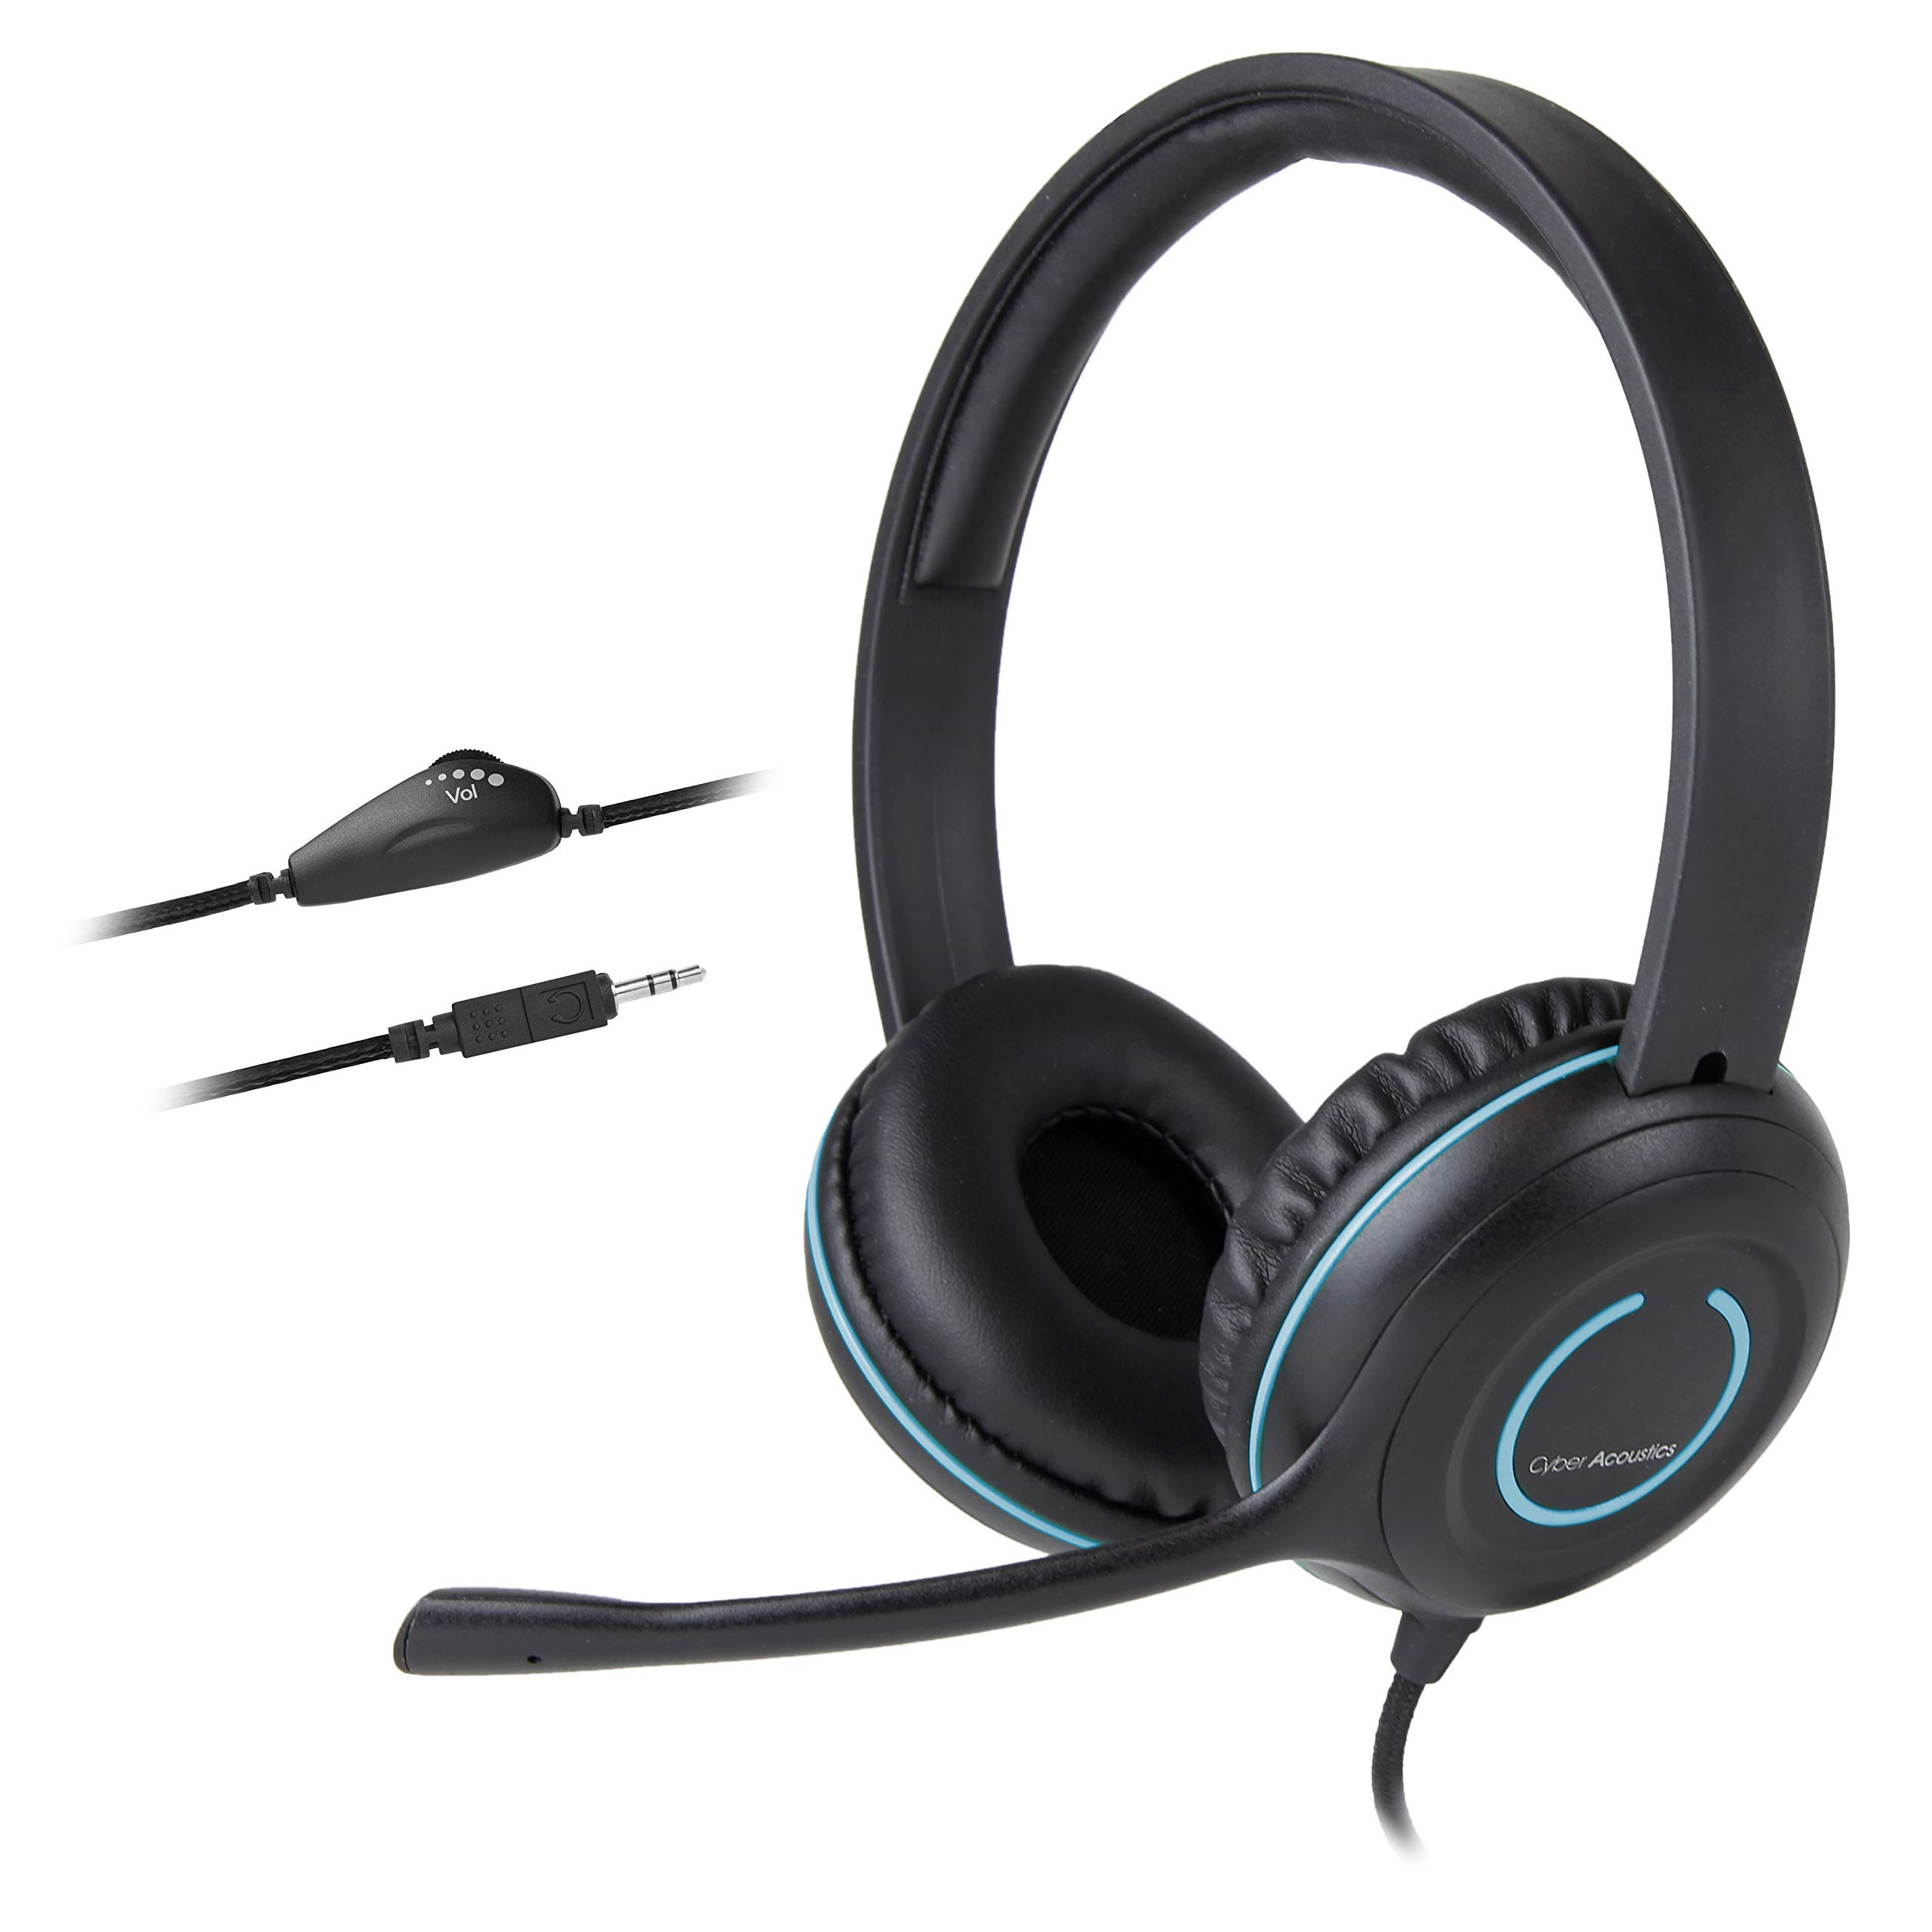 Cyber Acoustics 3.5mm Stereo Headset with Headphones and Noise Cancelling Microphone for PCs, Tablets, and Cell Phones in The Office, Classroom or Home (AC-5002) by Cyber Acoustics